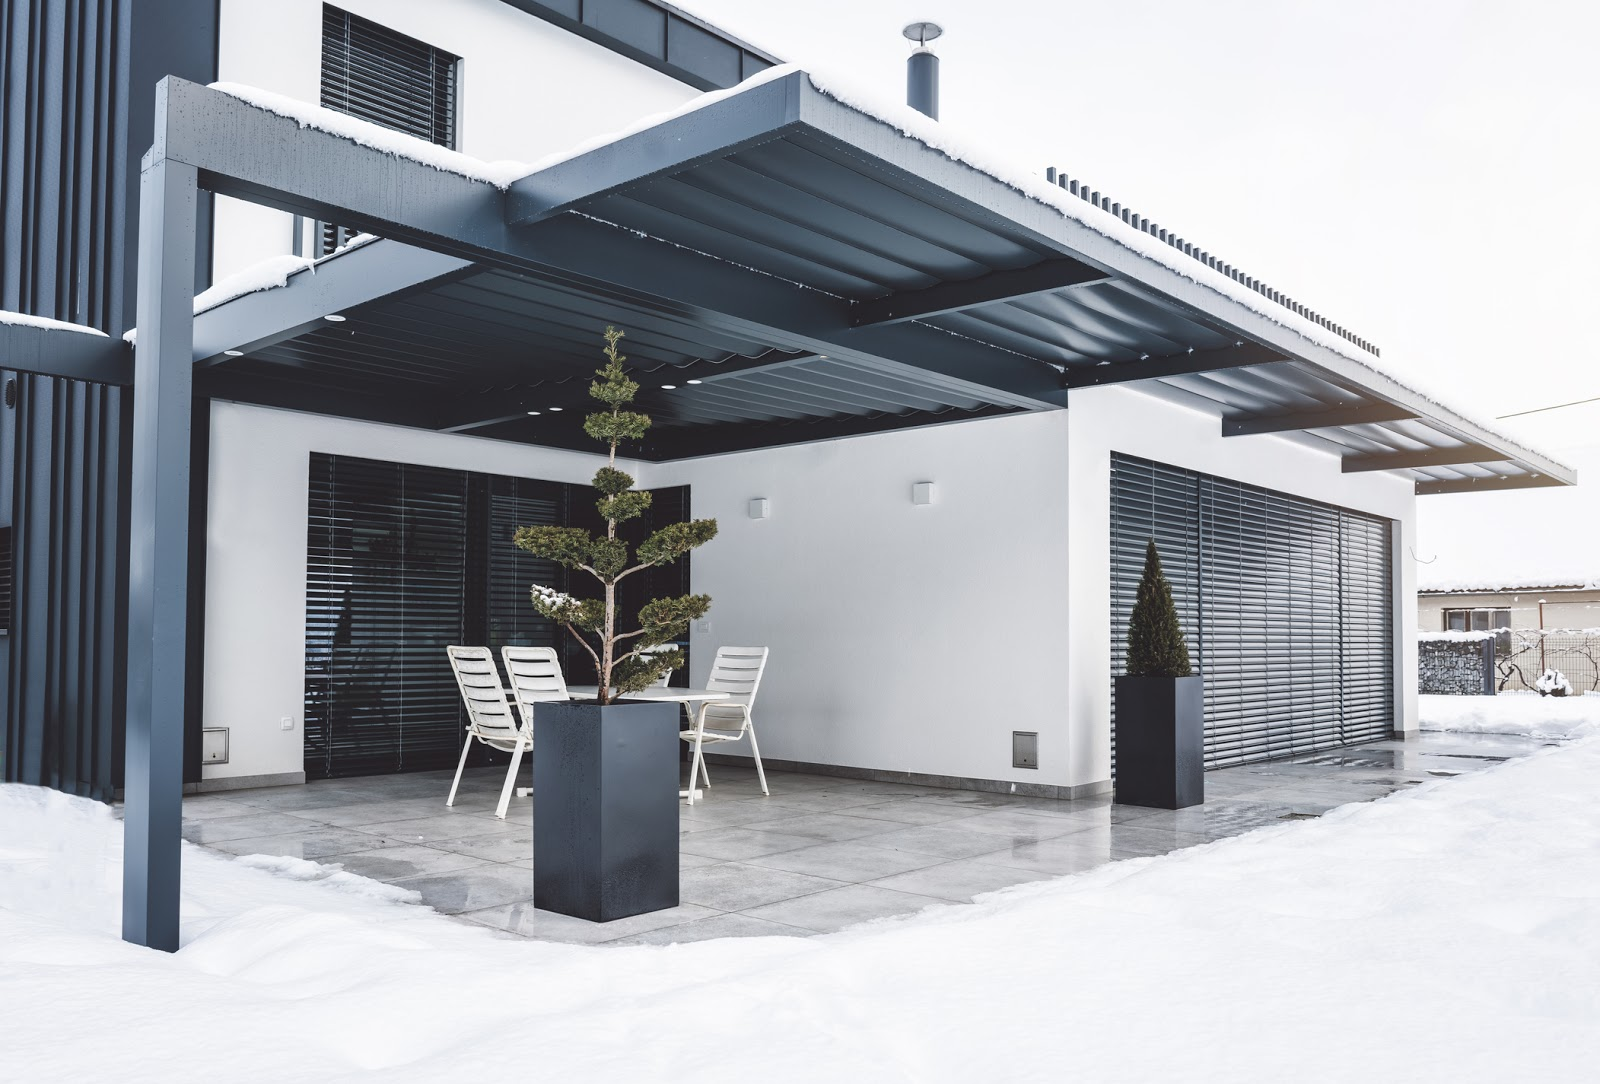 4 Outdoor Paving Products for Harsh Weather